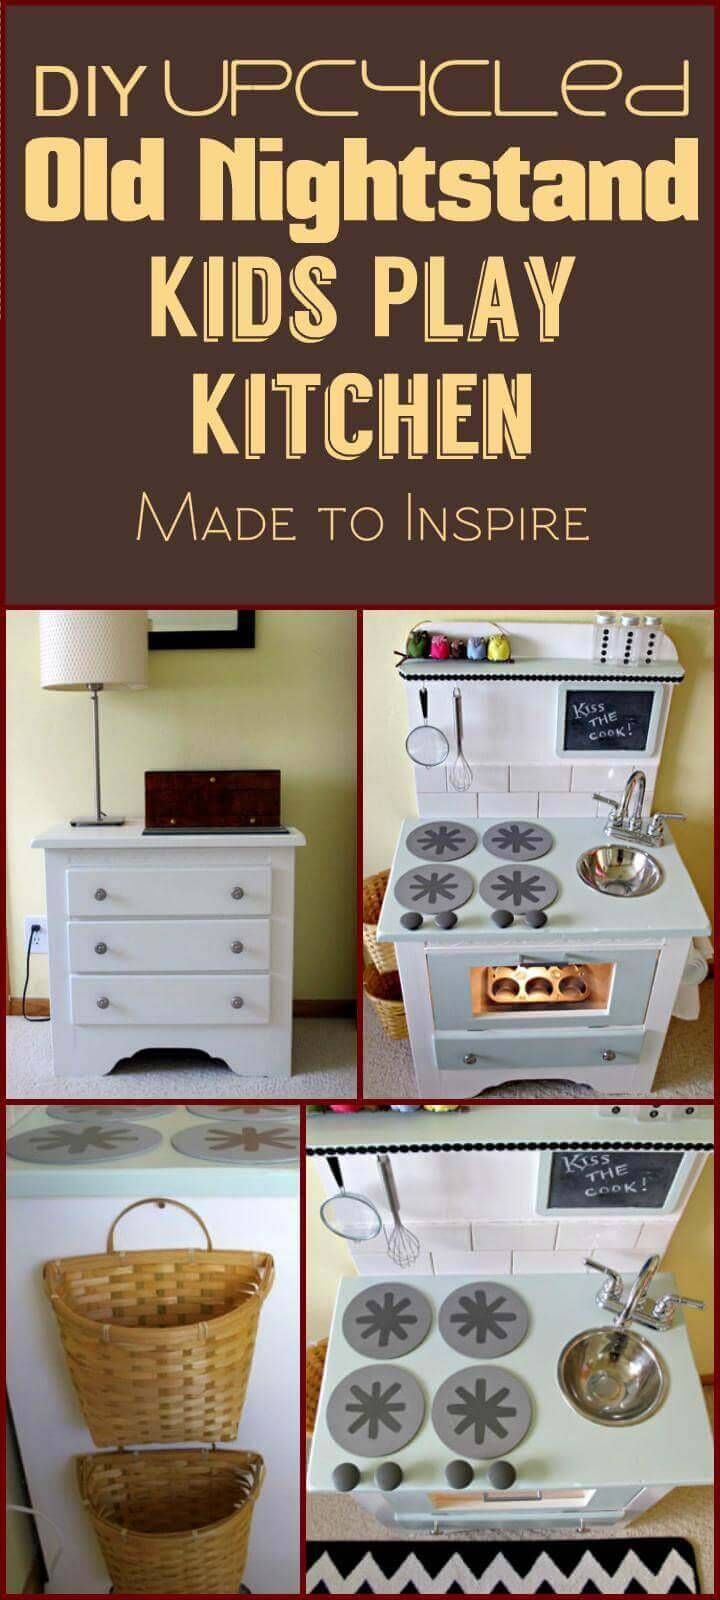 Repurposed old nightstand kids play kitchen